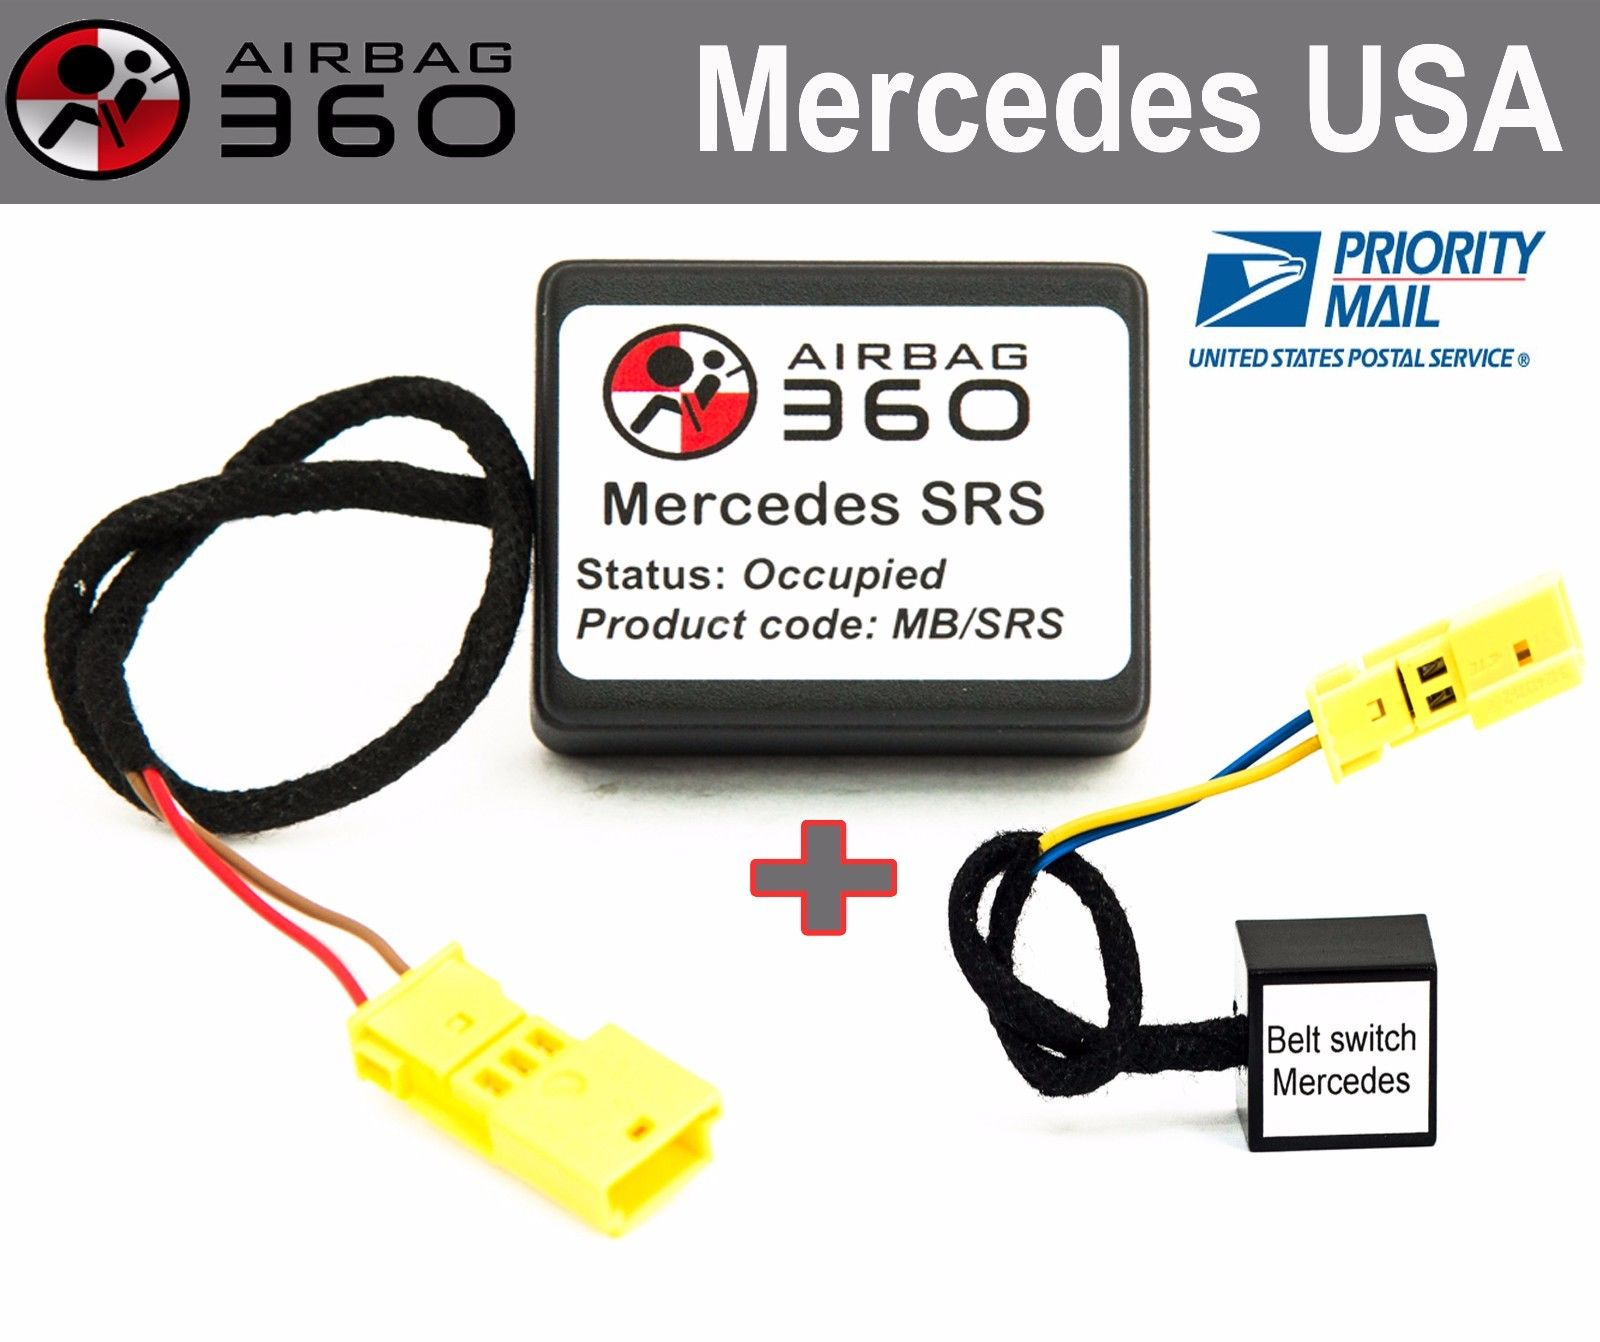 For MERCEDES CLK W208 1997-2003 Airbag Emulator Passanger Occupancy Seat Sensor